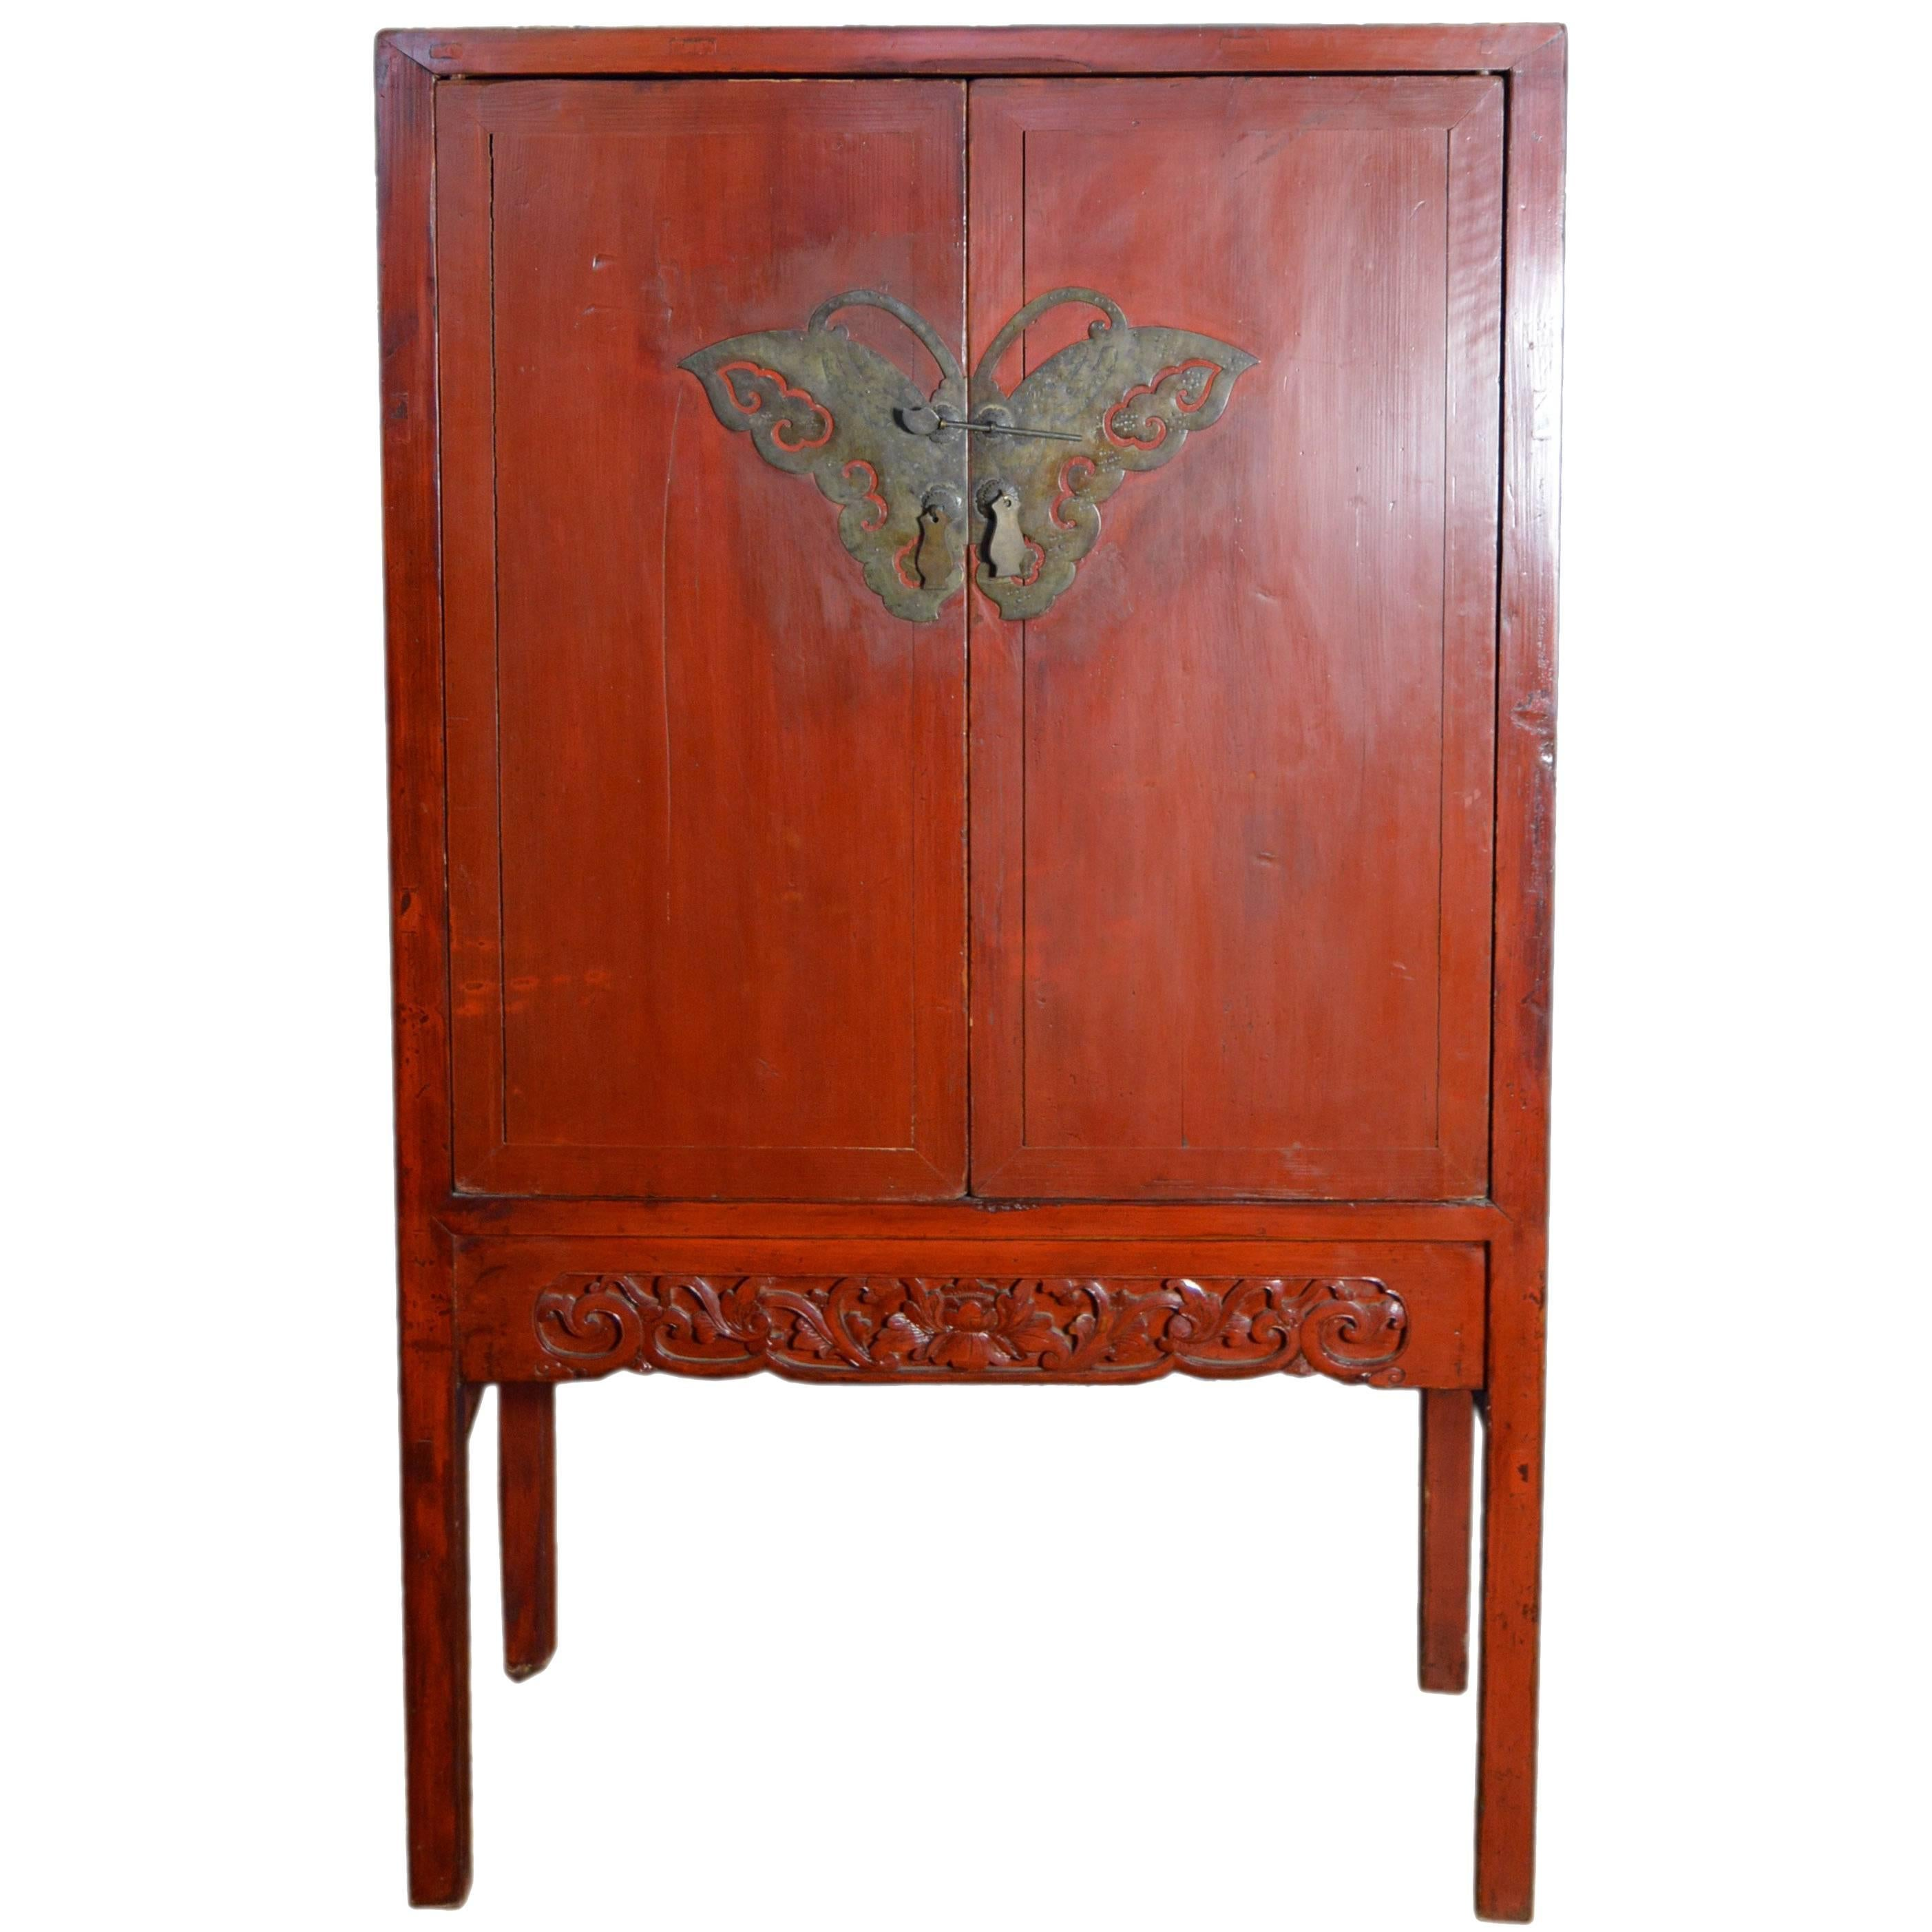 Ordinaire Late 19th Century Chinese Red Lacquered Two Door Cabinet With Butterfly  Hardware